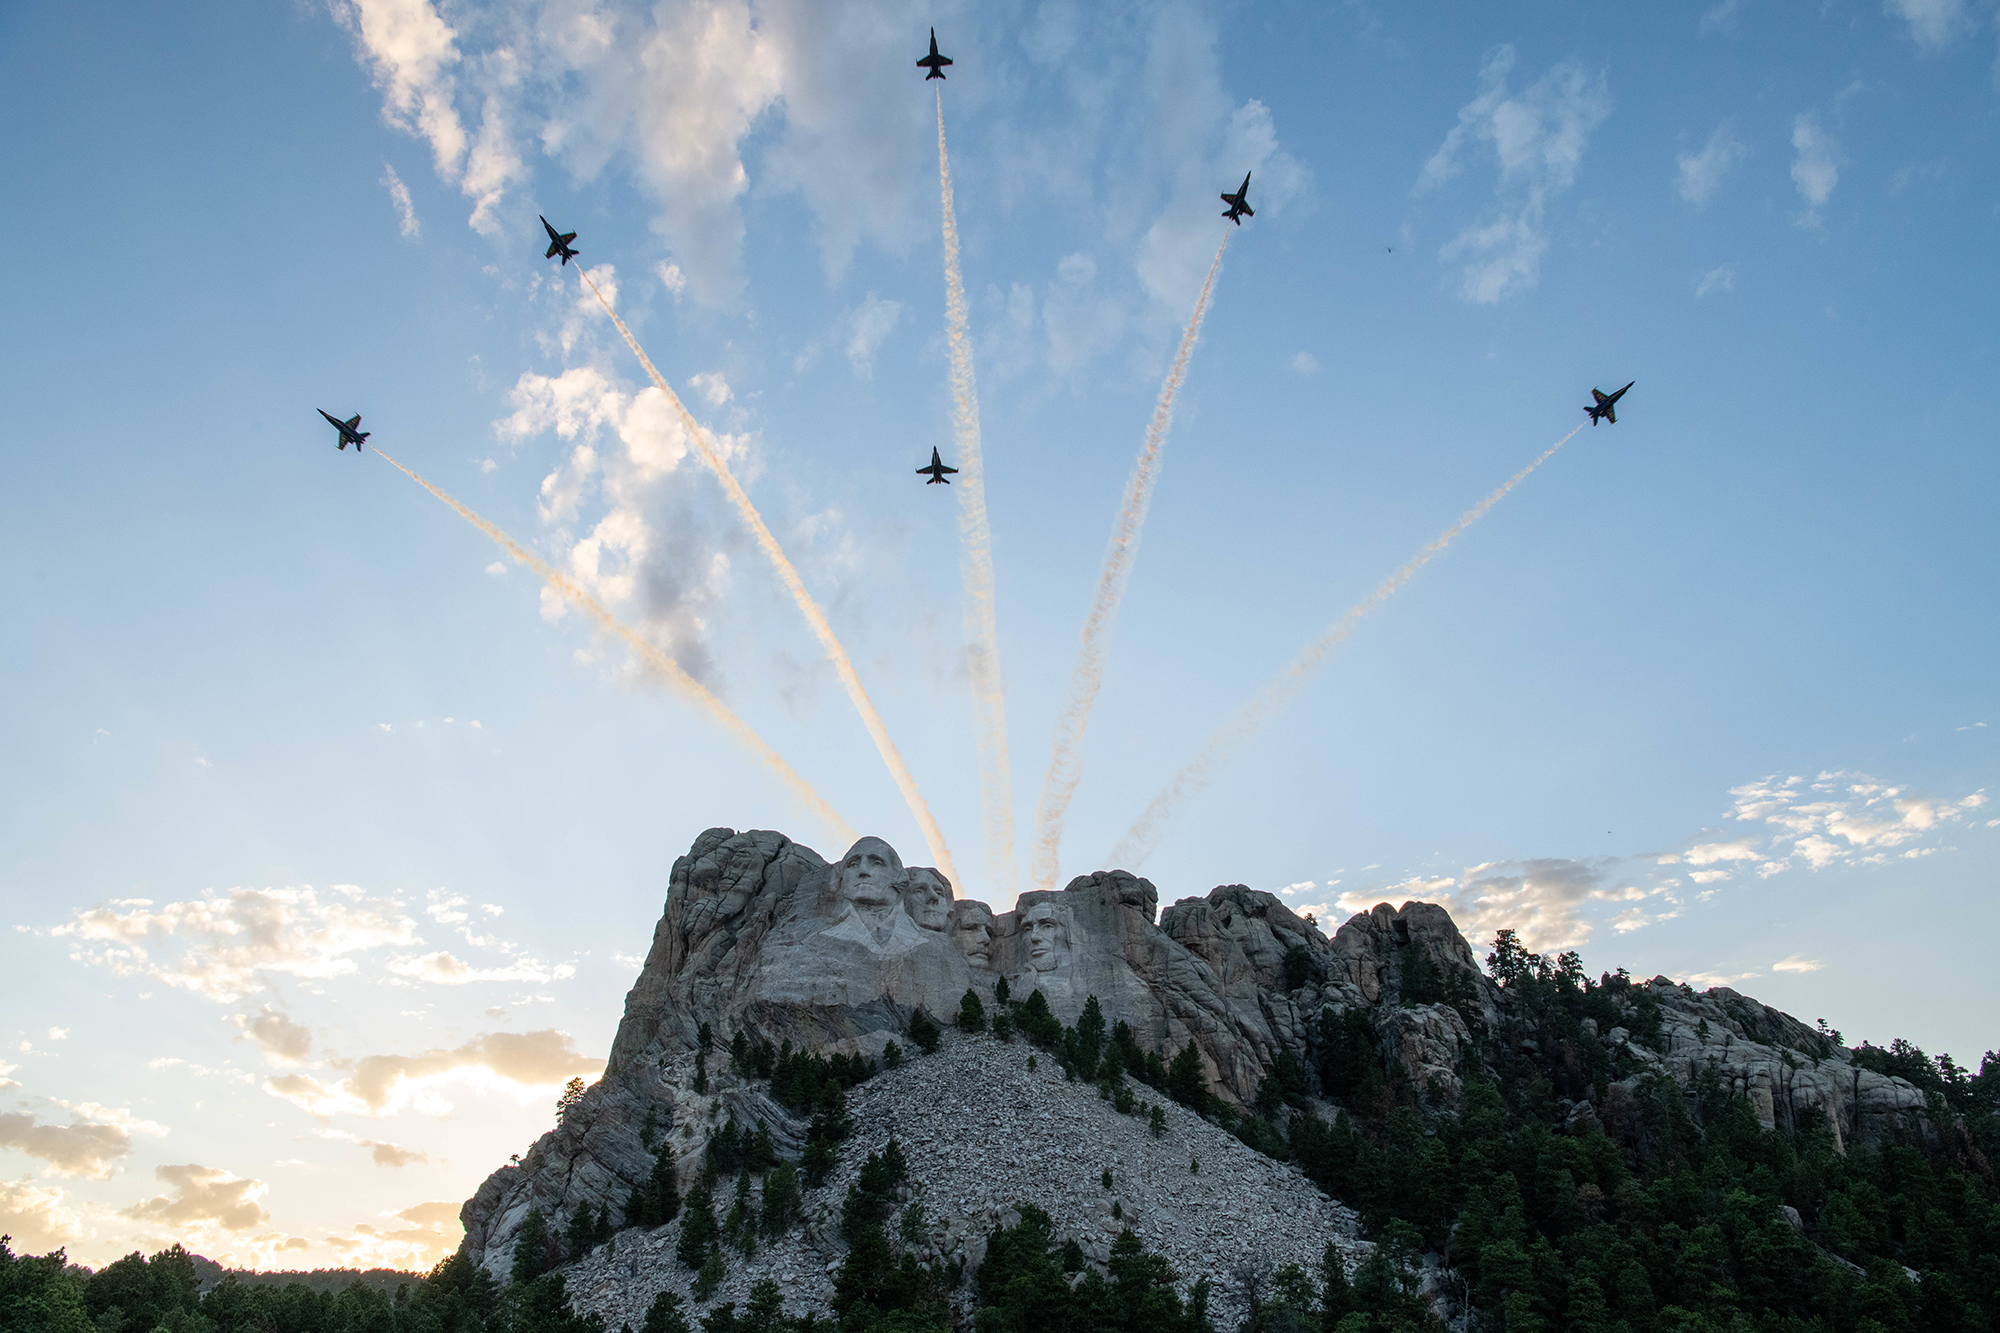 Blue Angels F-18 Hornets fly over Mount Rushmore during a